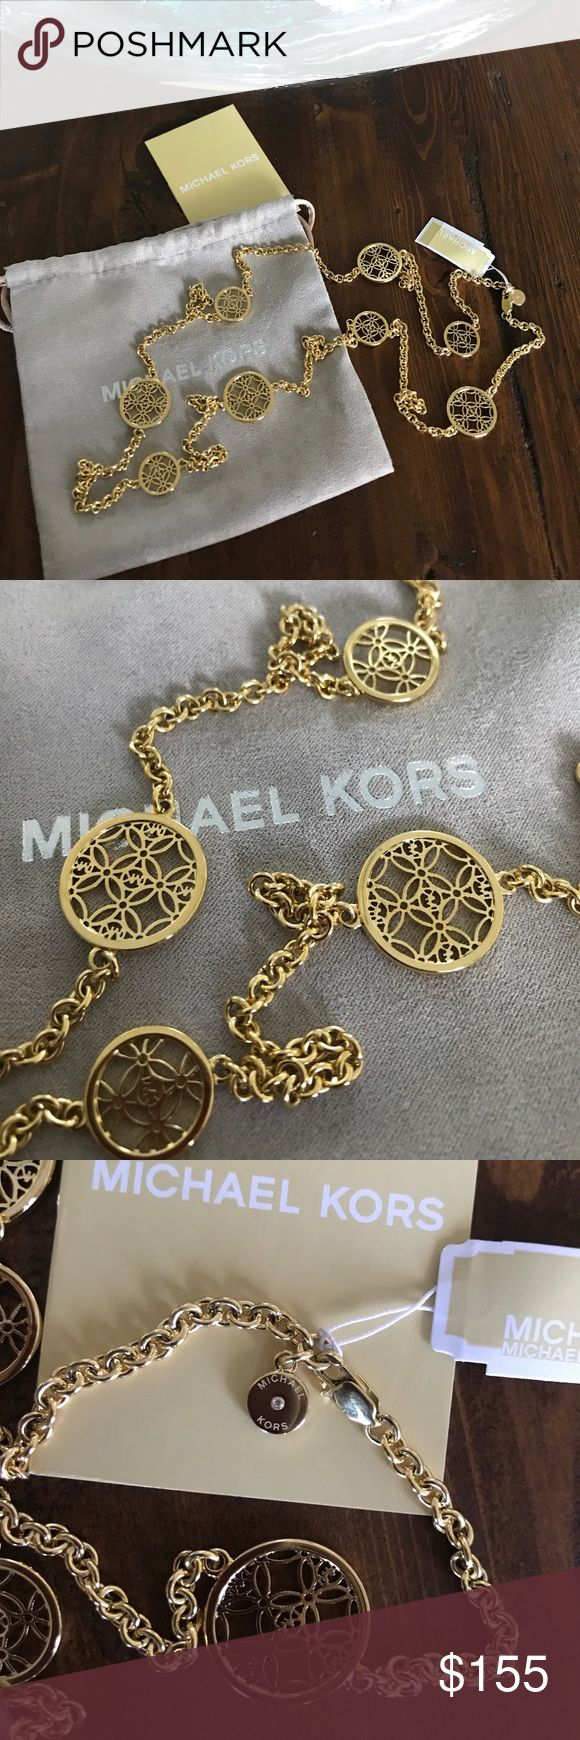 "MICHAEL KORS Monogram Gold Tone Chain Necklace Guaranteed Authentic! Brand New with Tag!  Gorgeous piece!!! Michael Kors monogram discs chain necklace. Color: gold tone. Lobster clasp closure. Approx. measurement: 38.5"" length. Dust bag and care card included. Item will be videotaped prior to shipping to ensure proof of condition. Michael Kors Jewelry Necklaces"